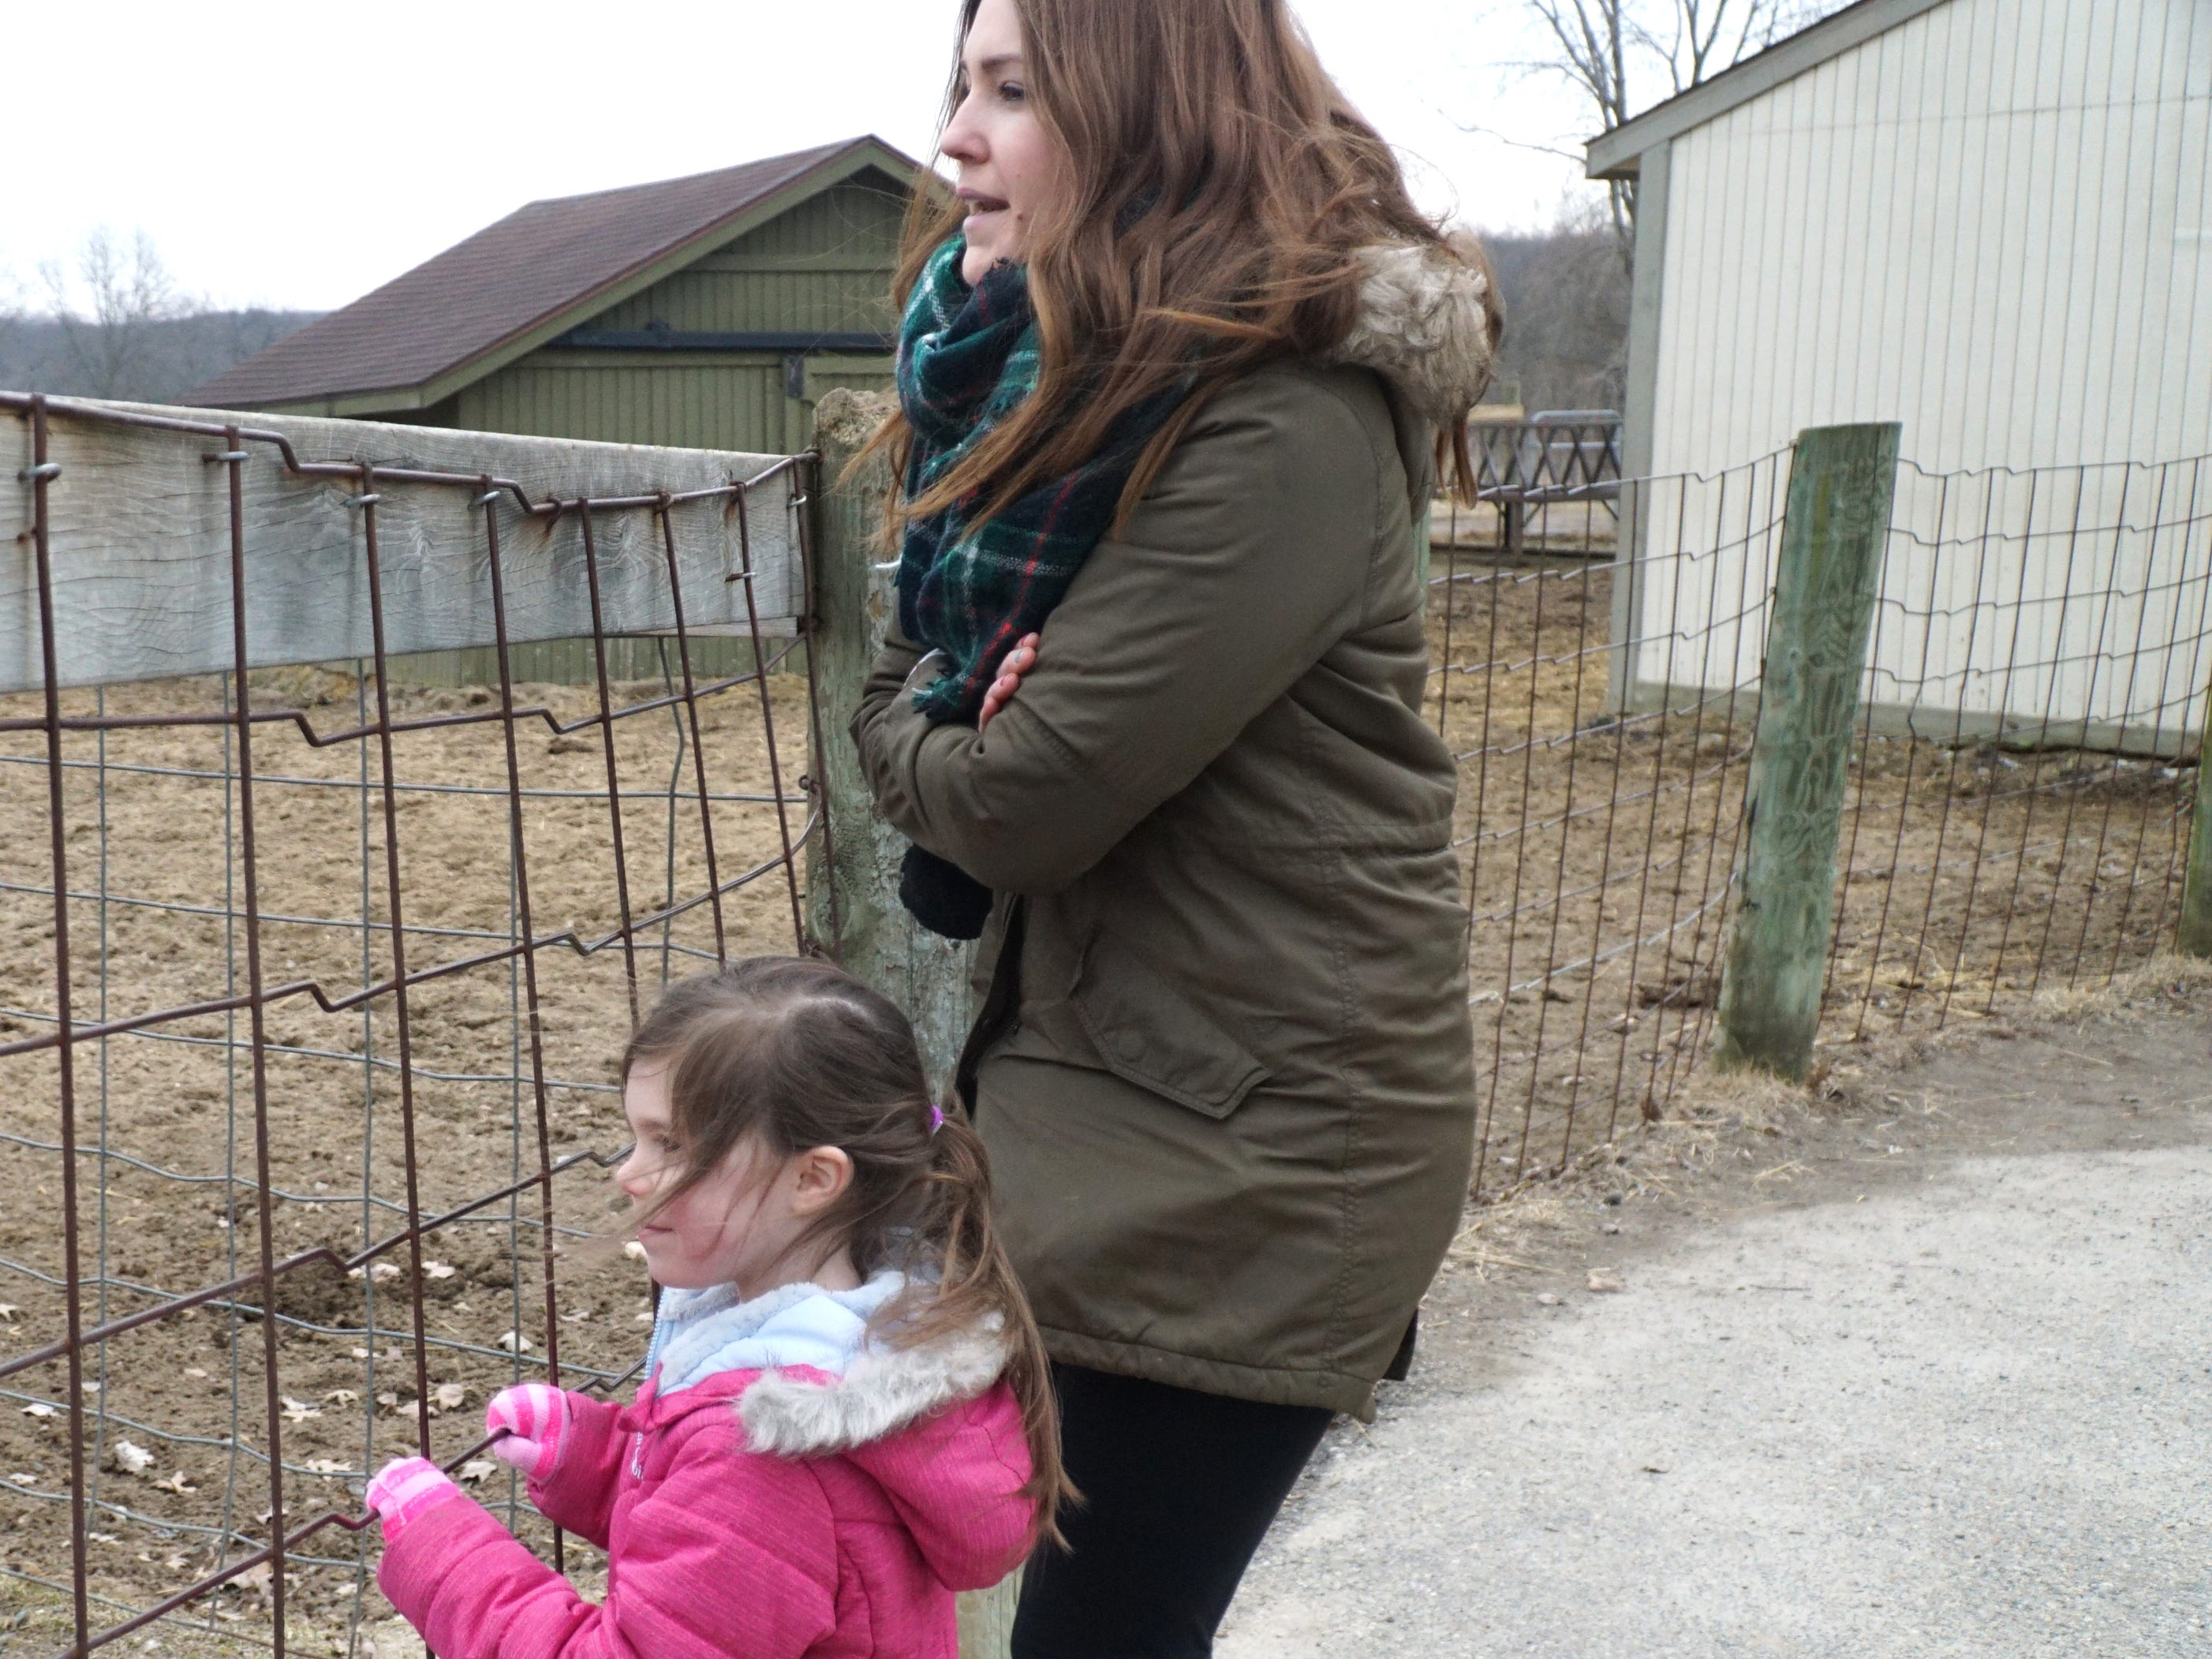 Megan Geldardi and her daughter Mia, 4, take a look at a pair of young Belgian plow horses at Kensington on March 20.